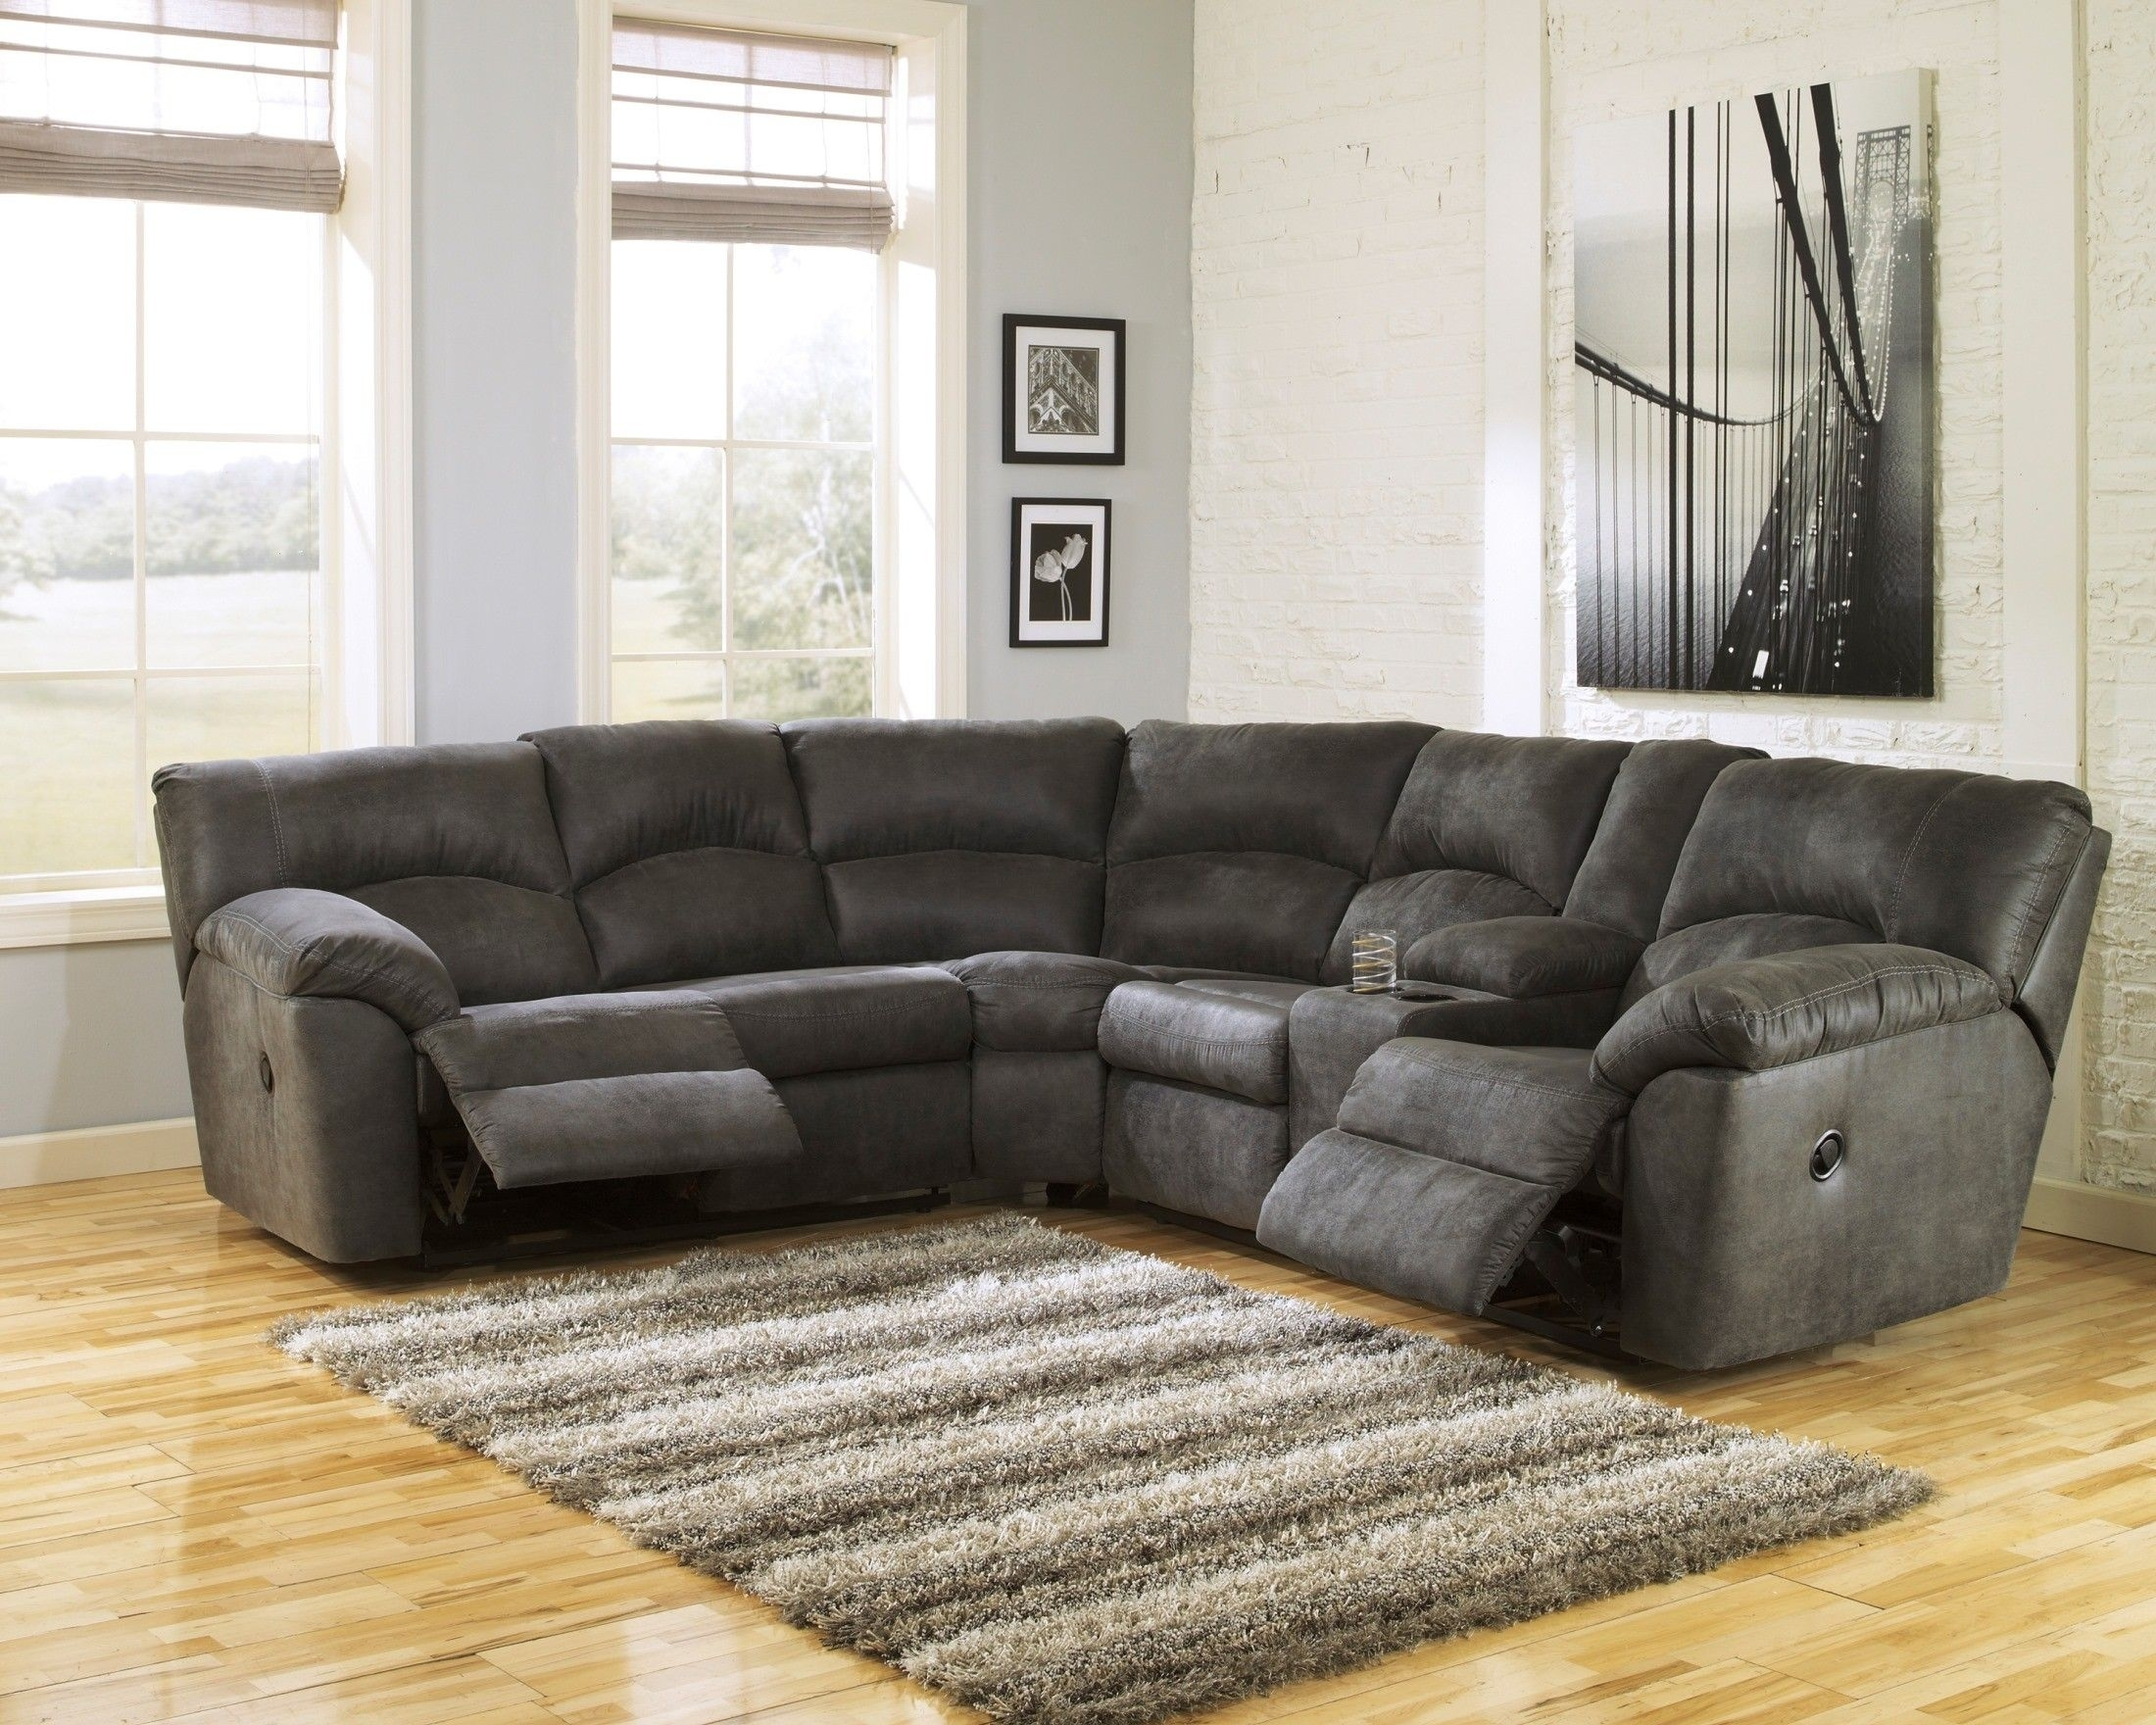 Tambo Pewter, Asl-27801-48-49, Ashley Furniture | My Livingroom within Norfolk Chocolate 6 Piece Sectionals (Image 29 of 30)